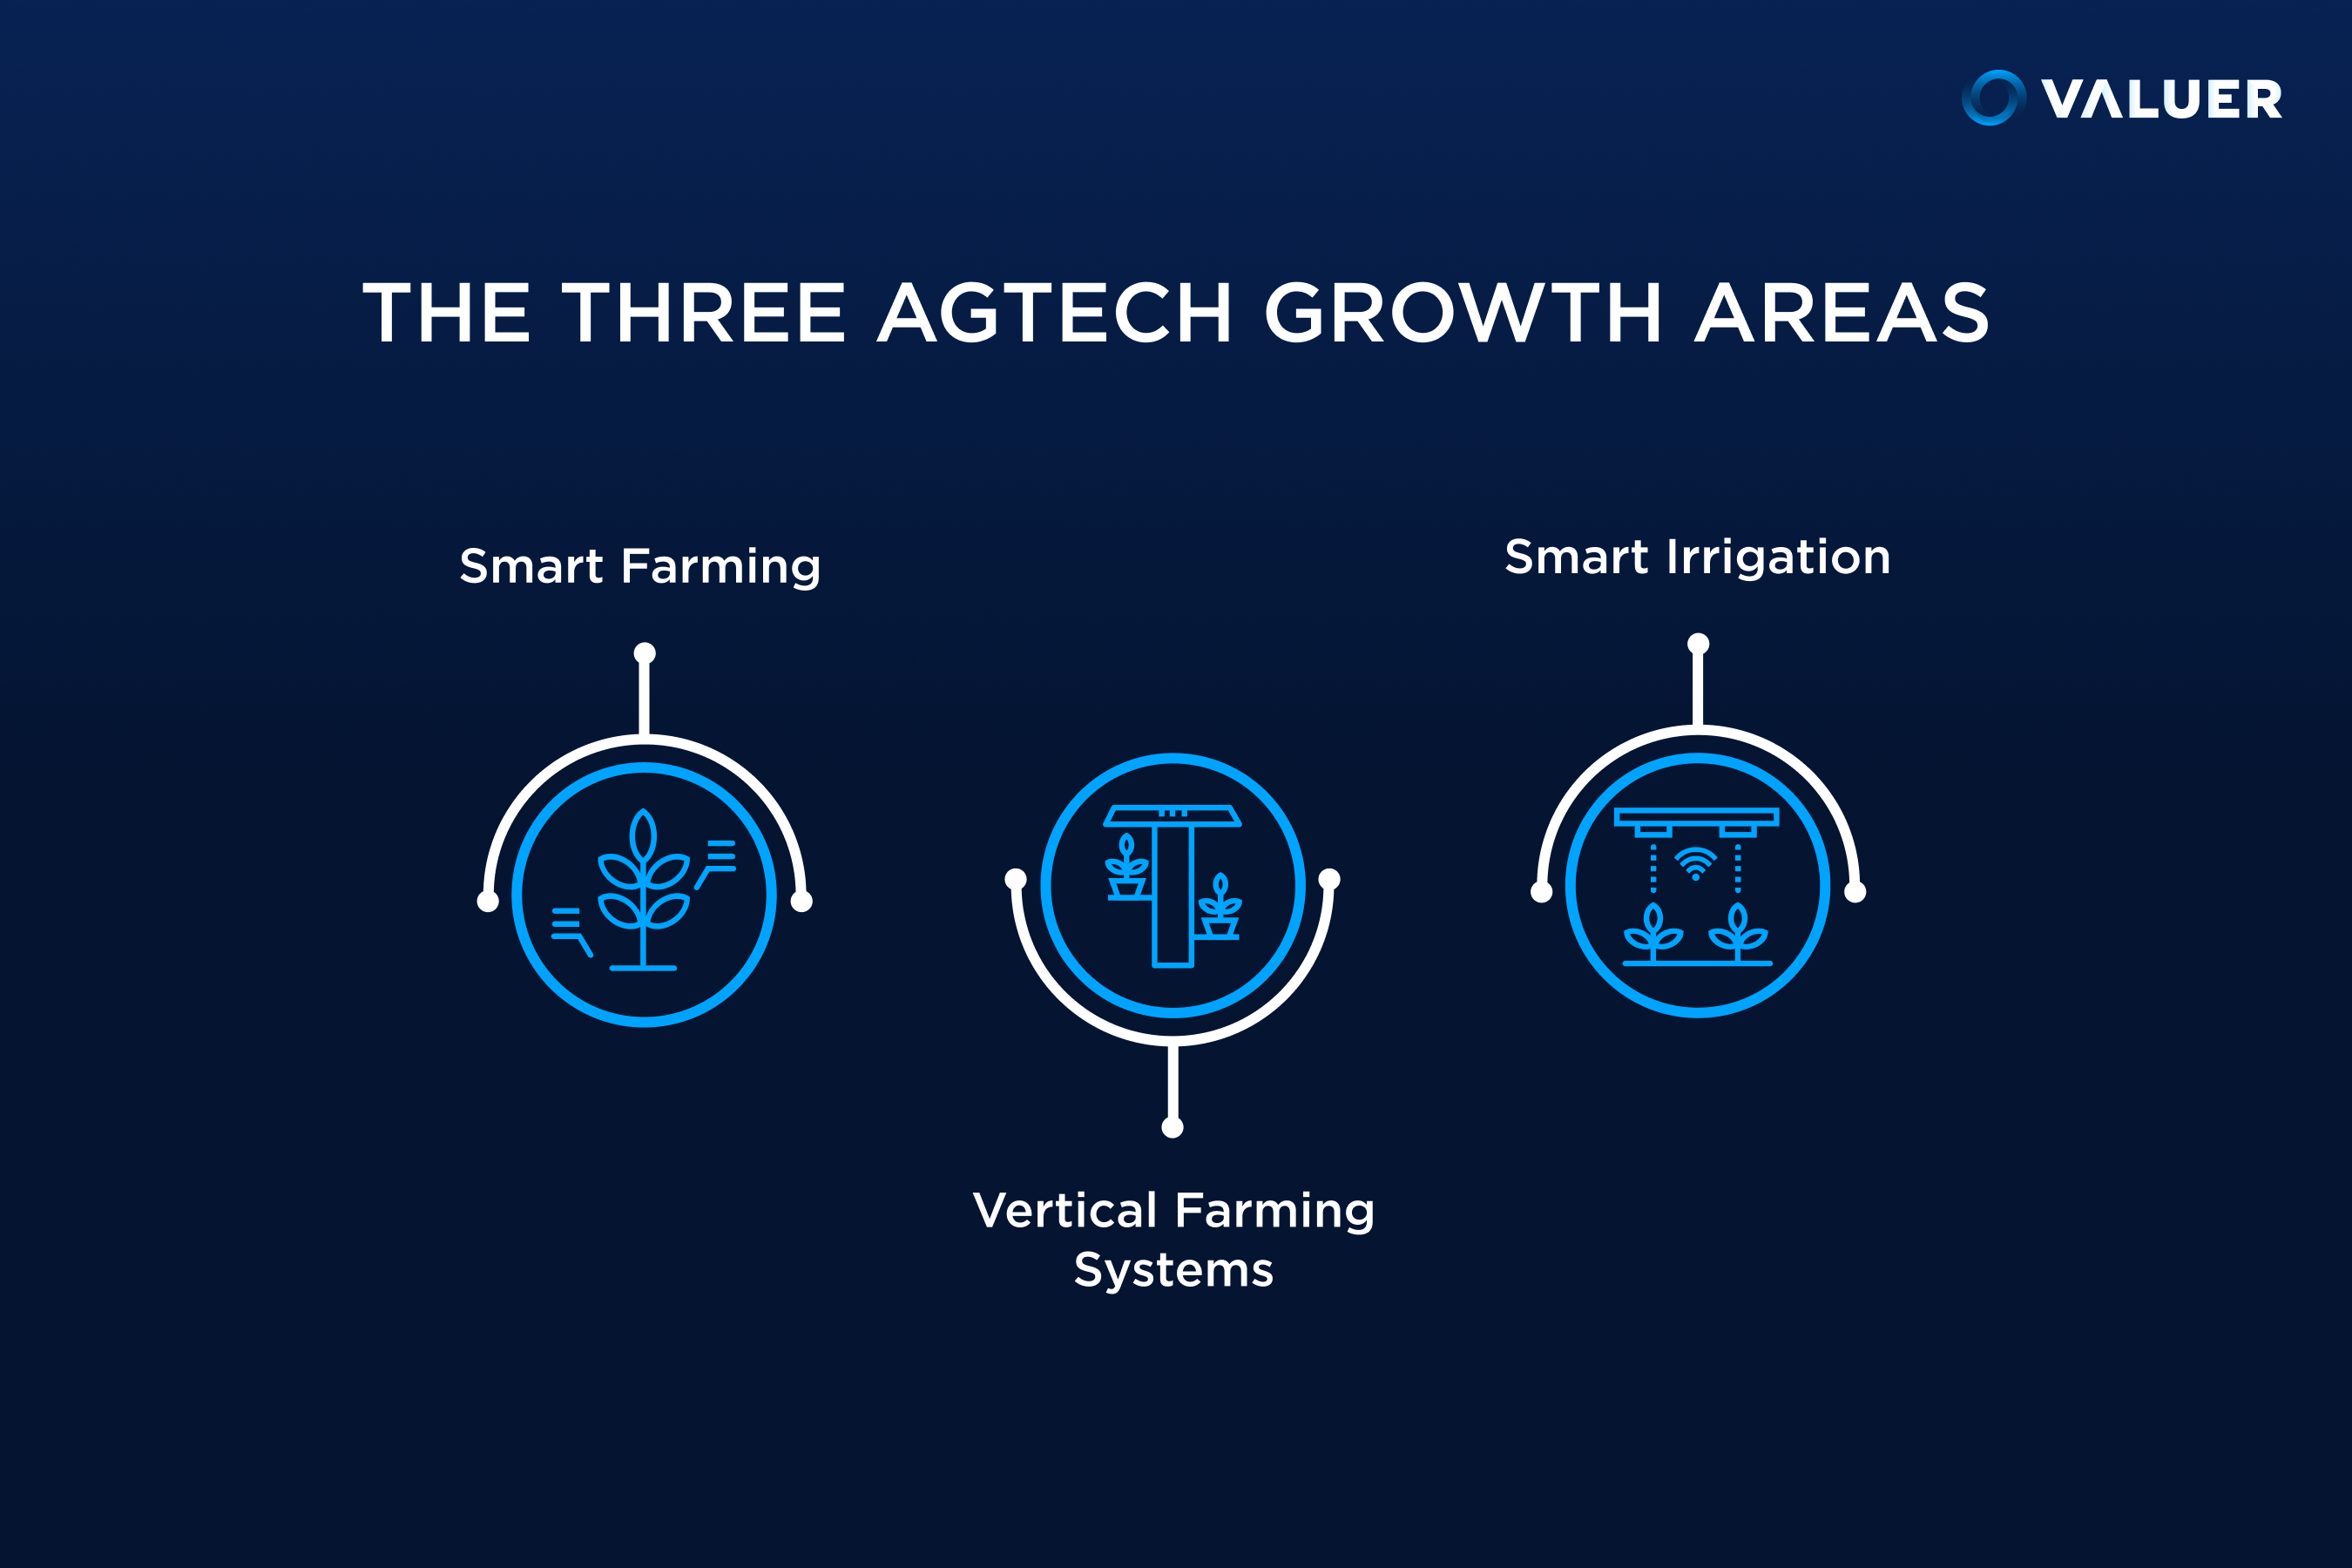 3 agtech growth areas represented by various symbols